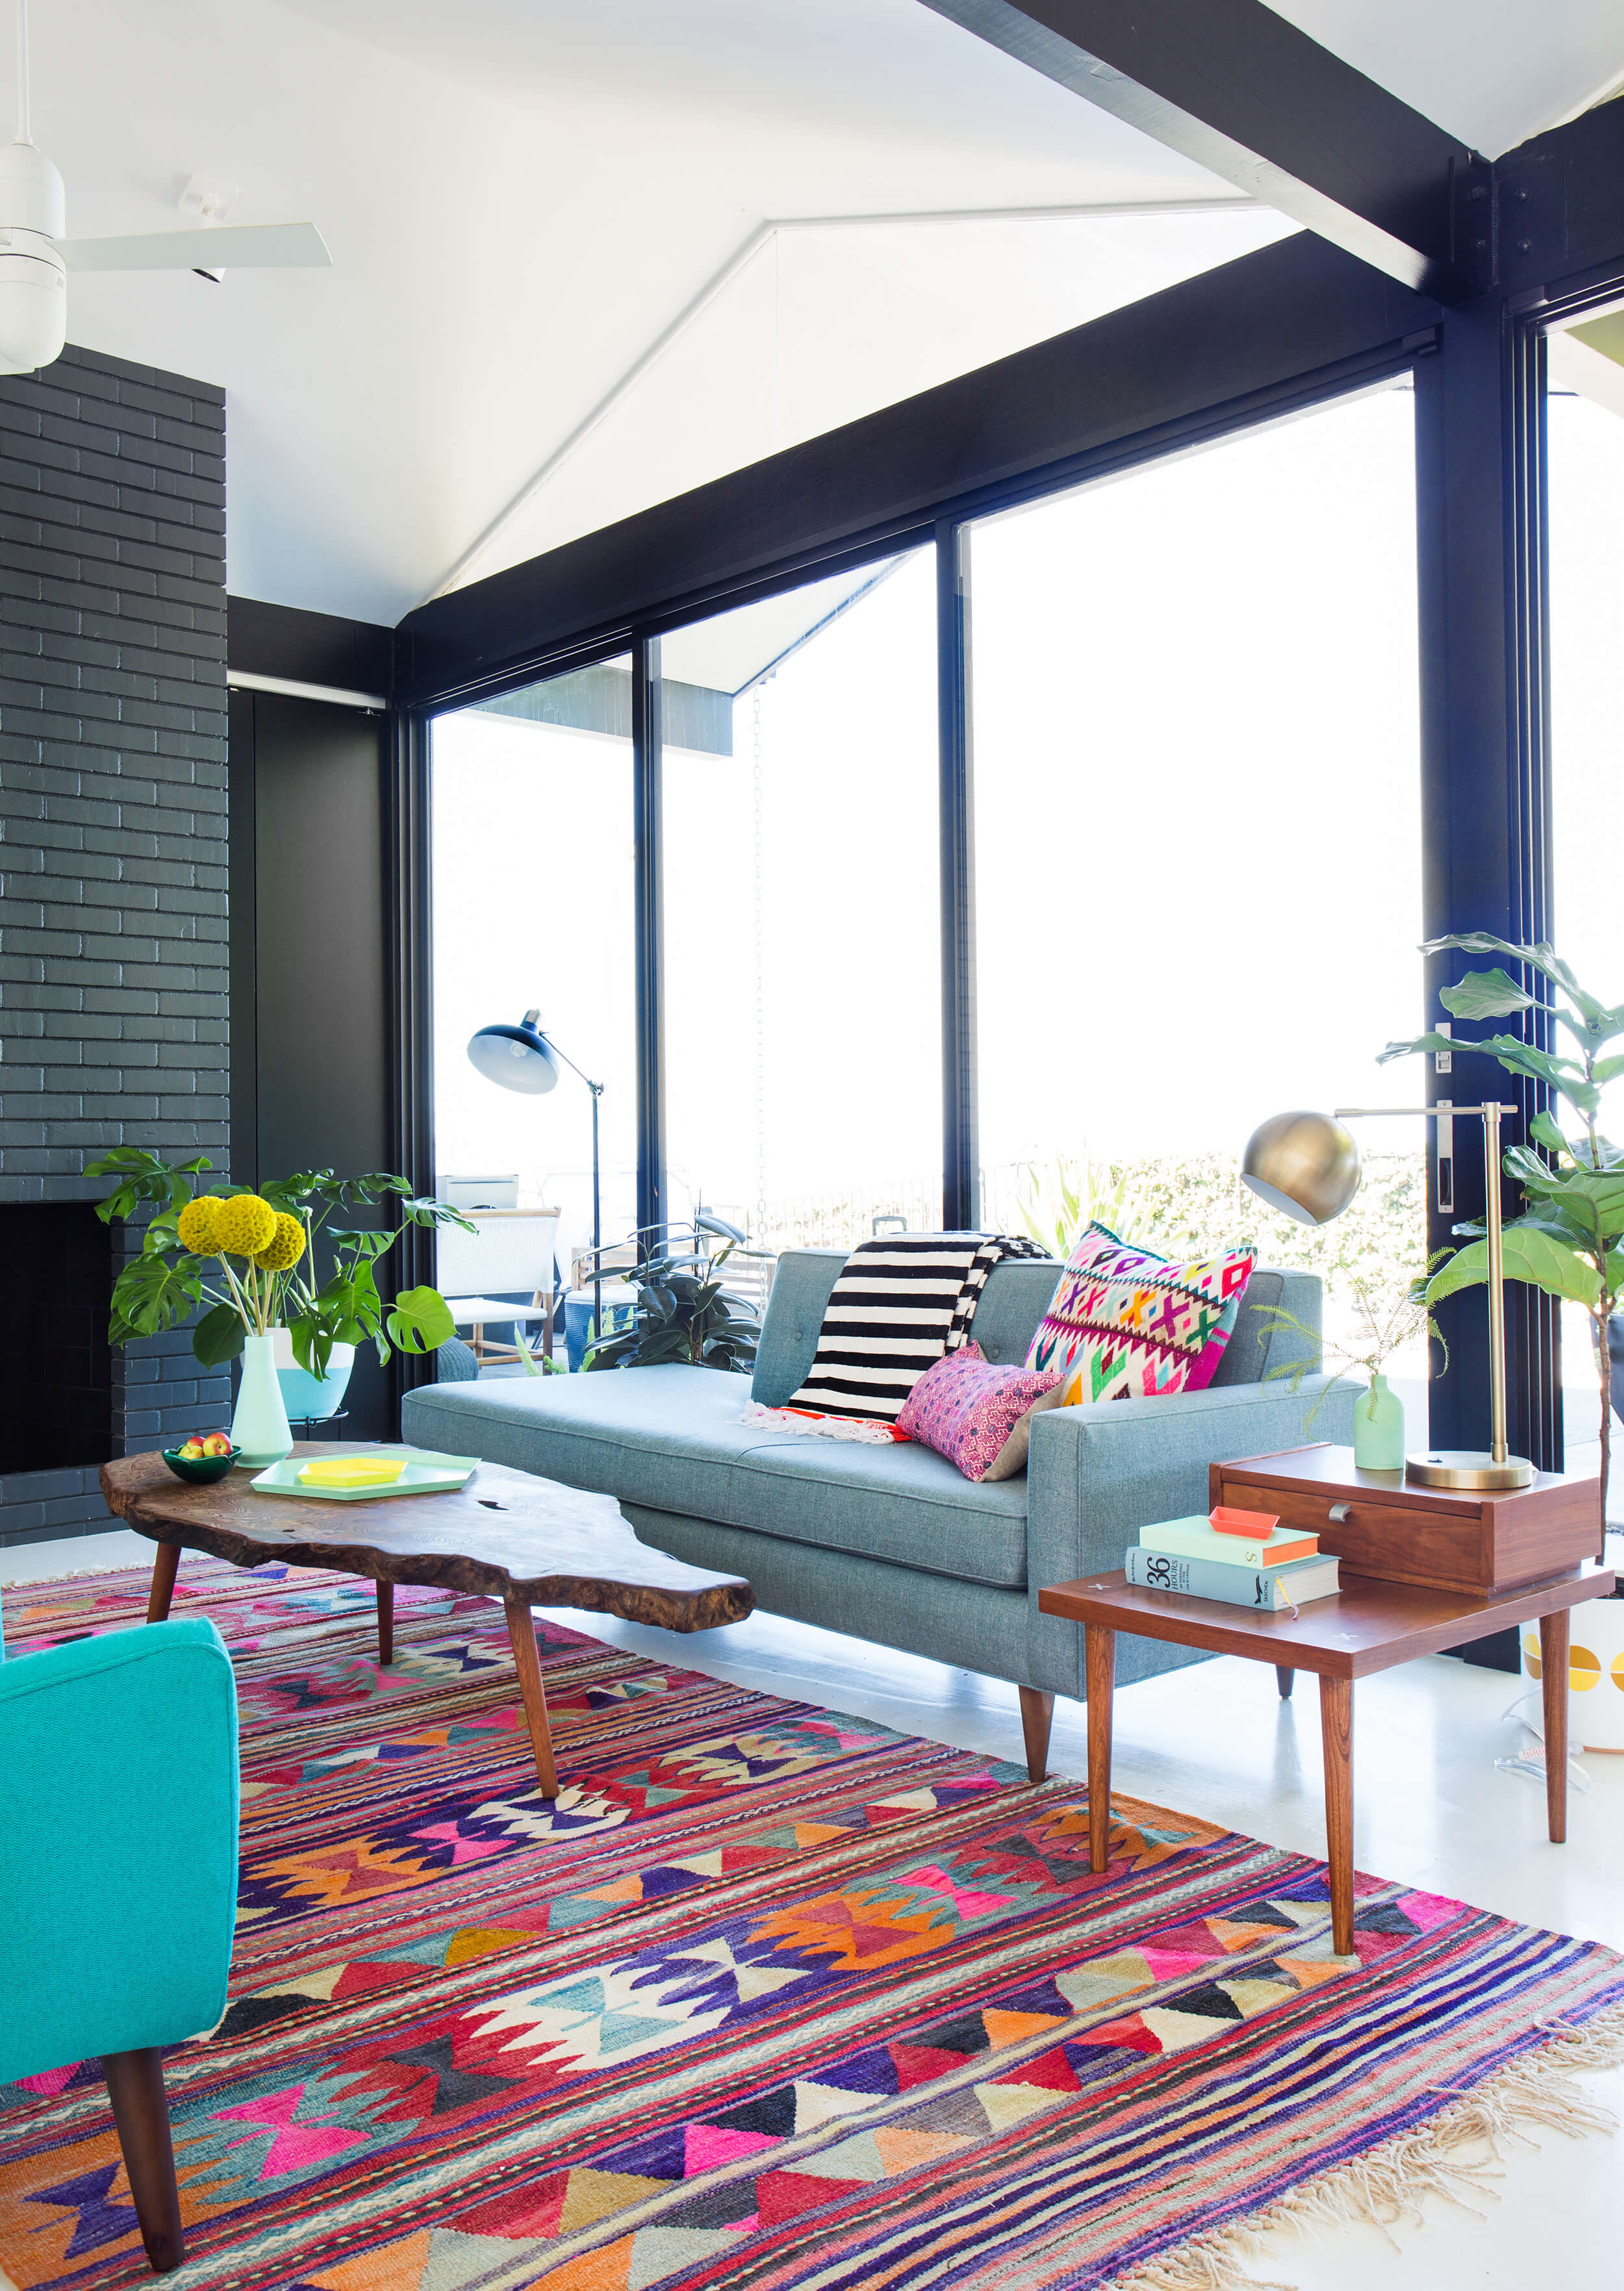 5 Living Room Color Combinations That Will Bring Joy to Your Home_1 room color combinations 5 Living Room Color Combinations That Will Bring Joy to Your Home 5 Living Room Color Combinations That Will Bring Joy to Your Home 1